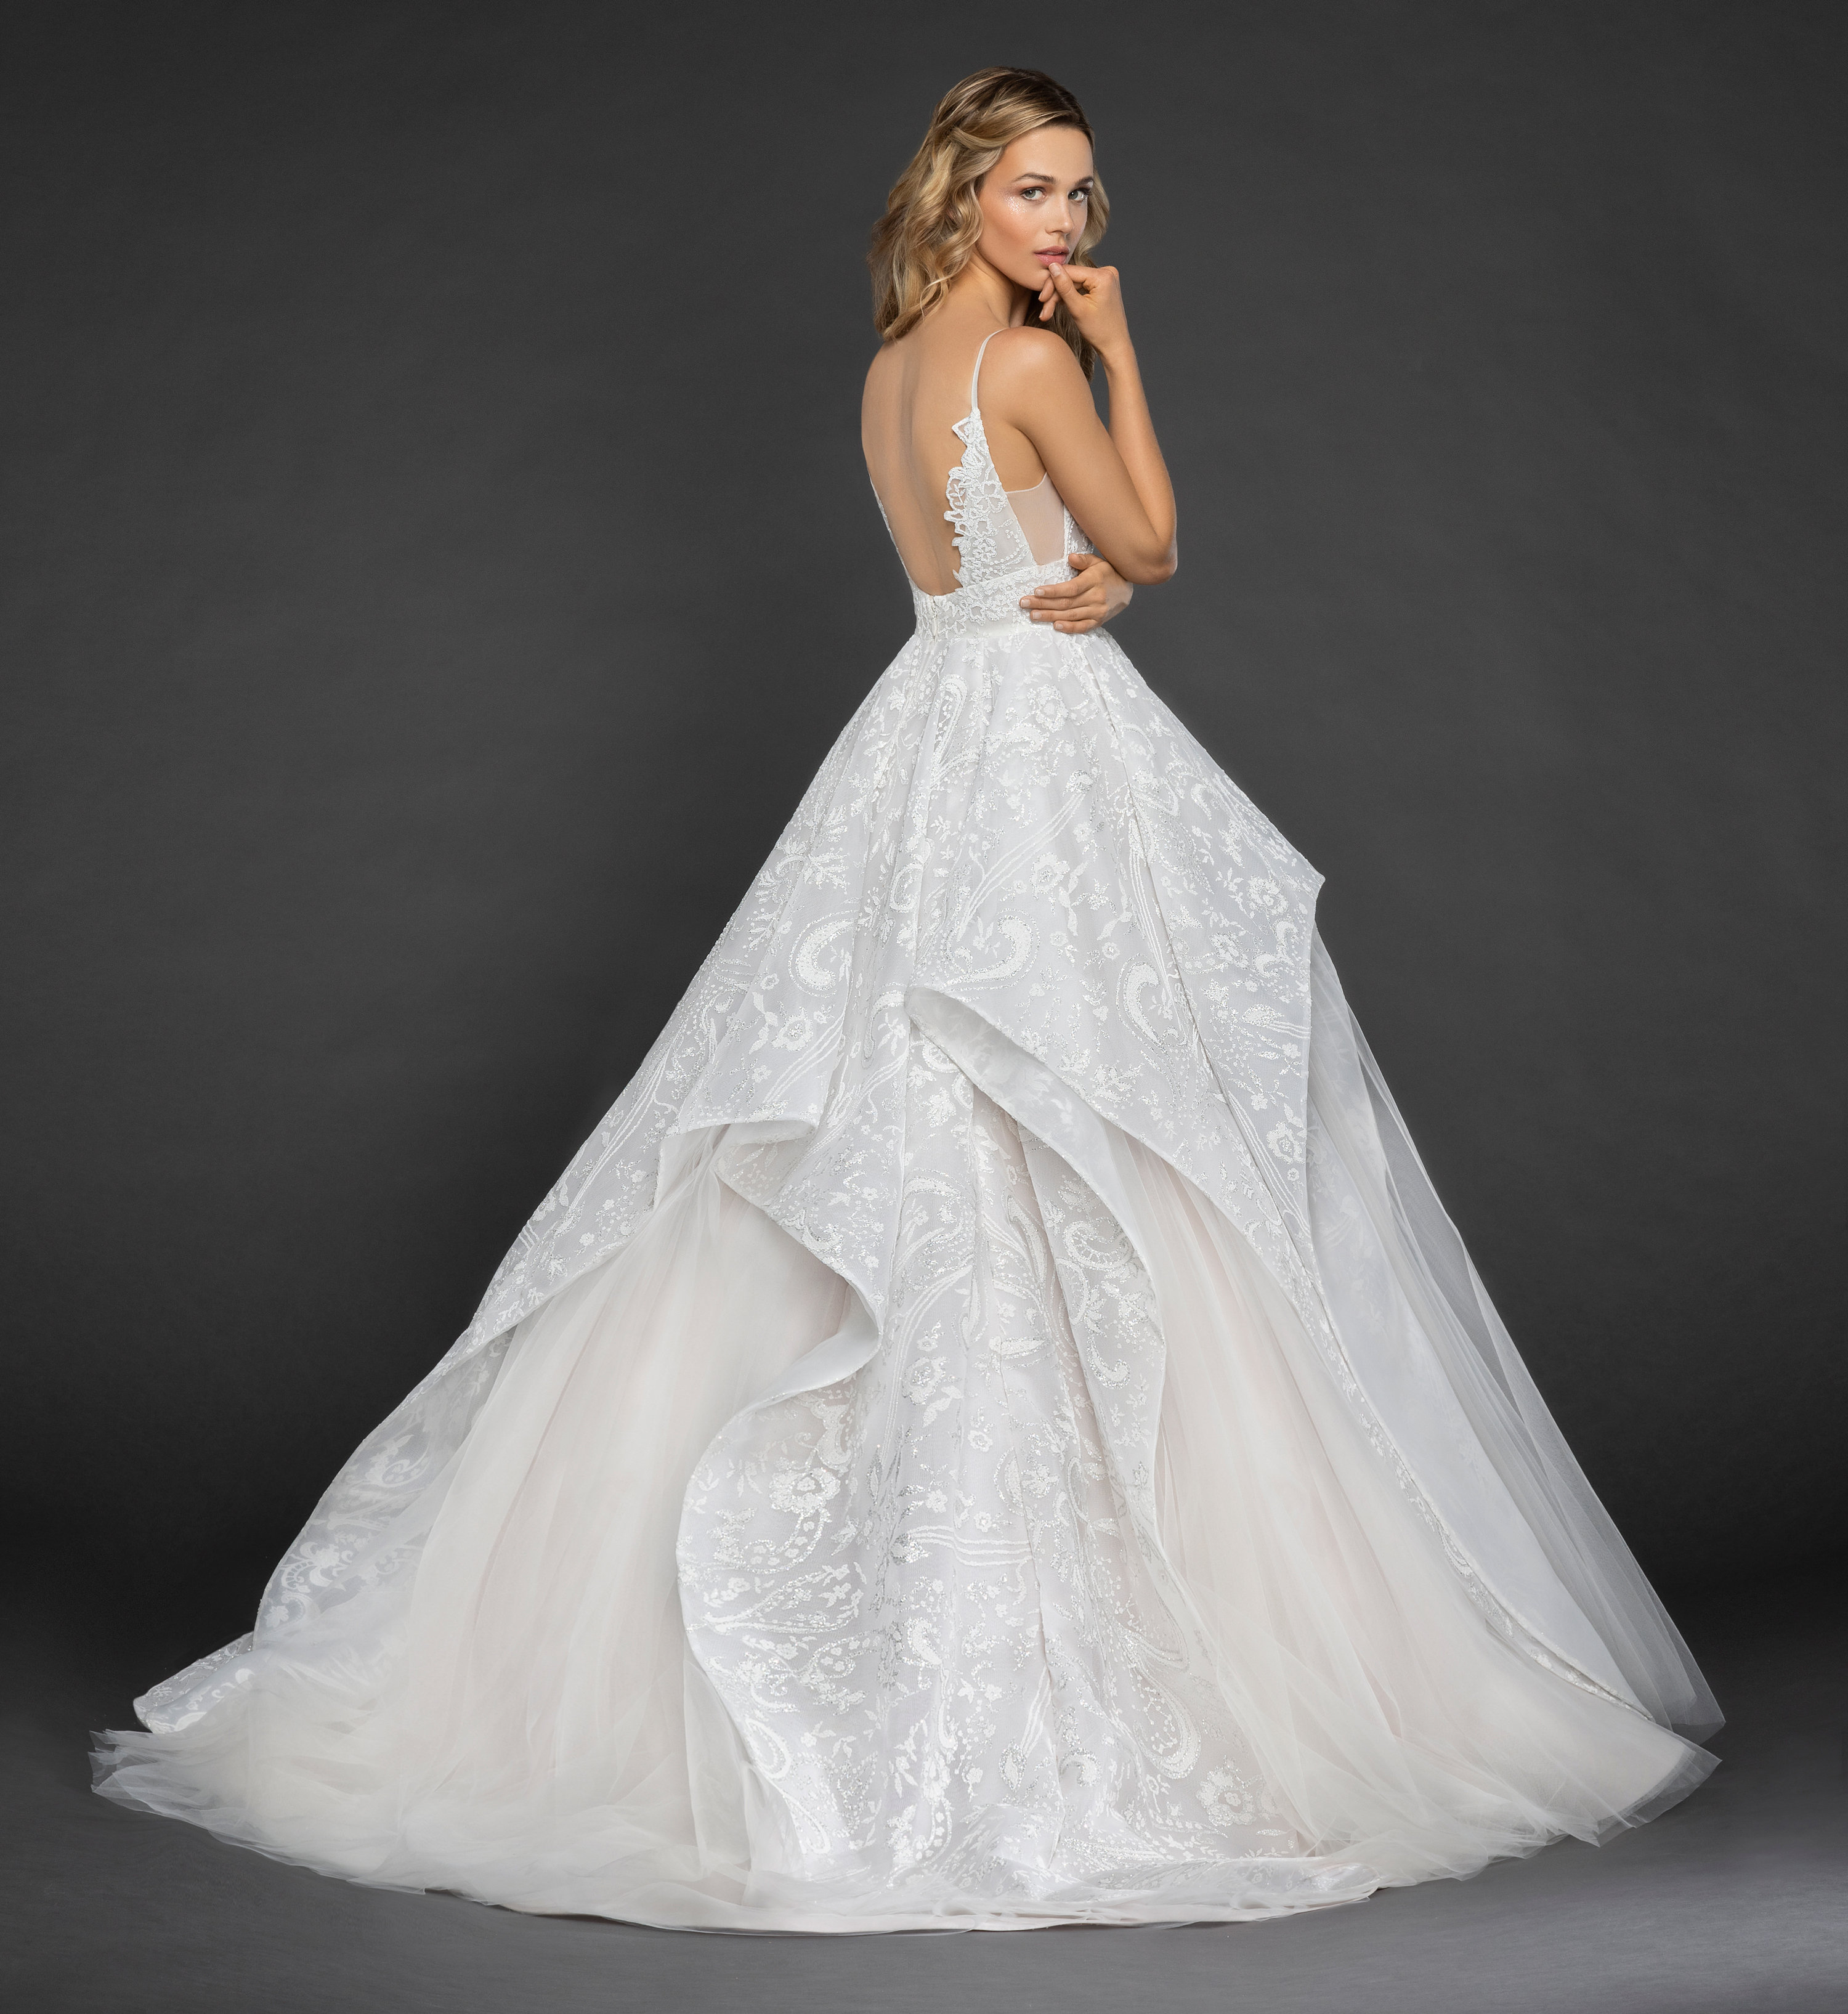 Bridal Gowns and Wedding Dresses by JLM Couture - Style 6850 Markle